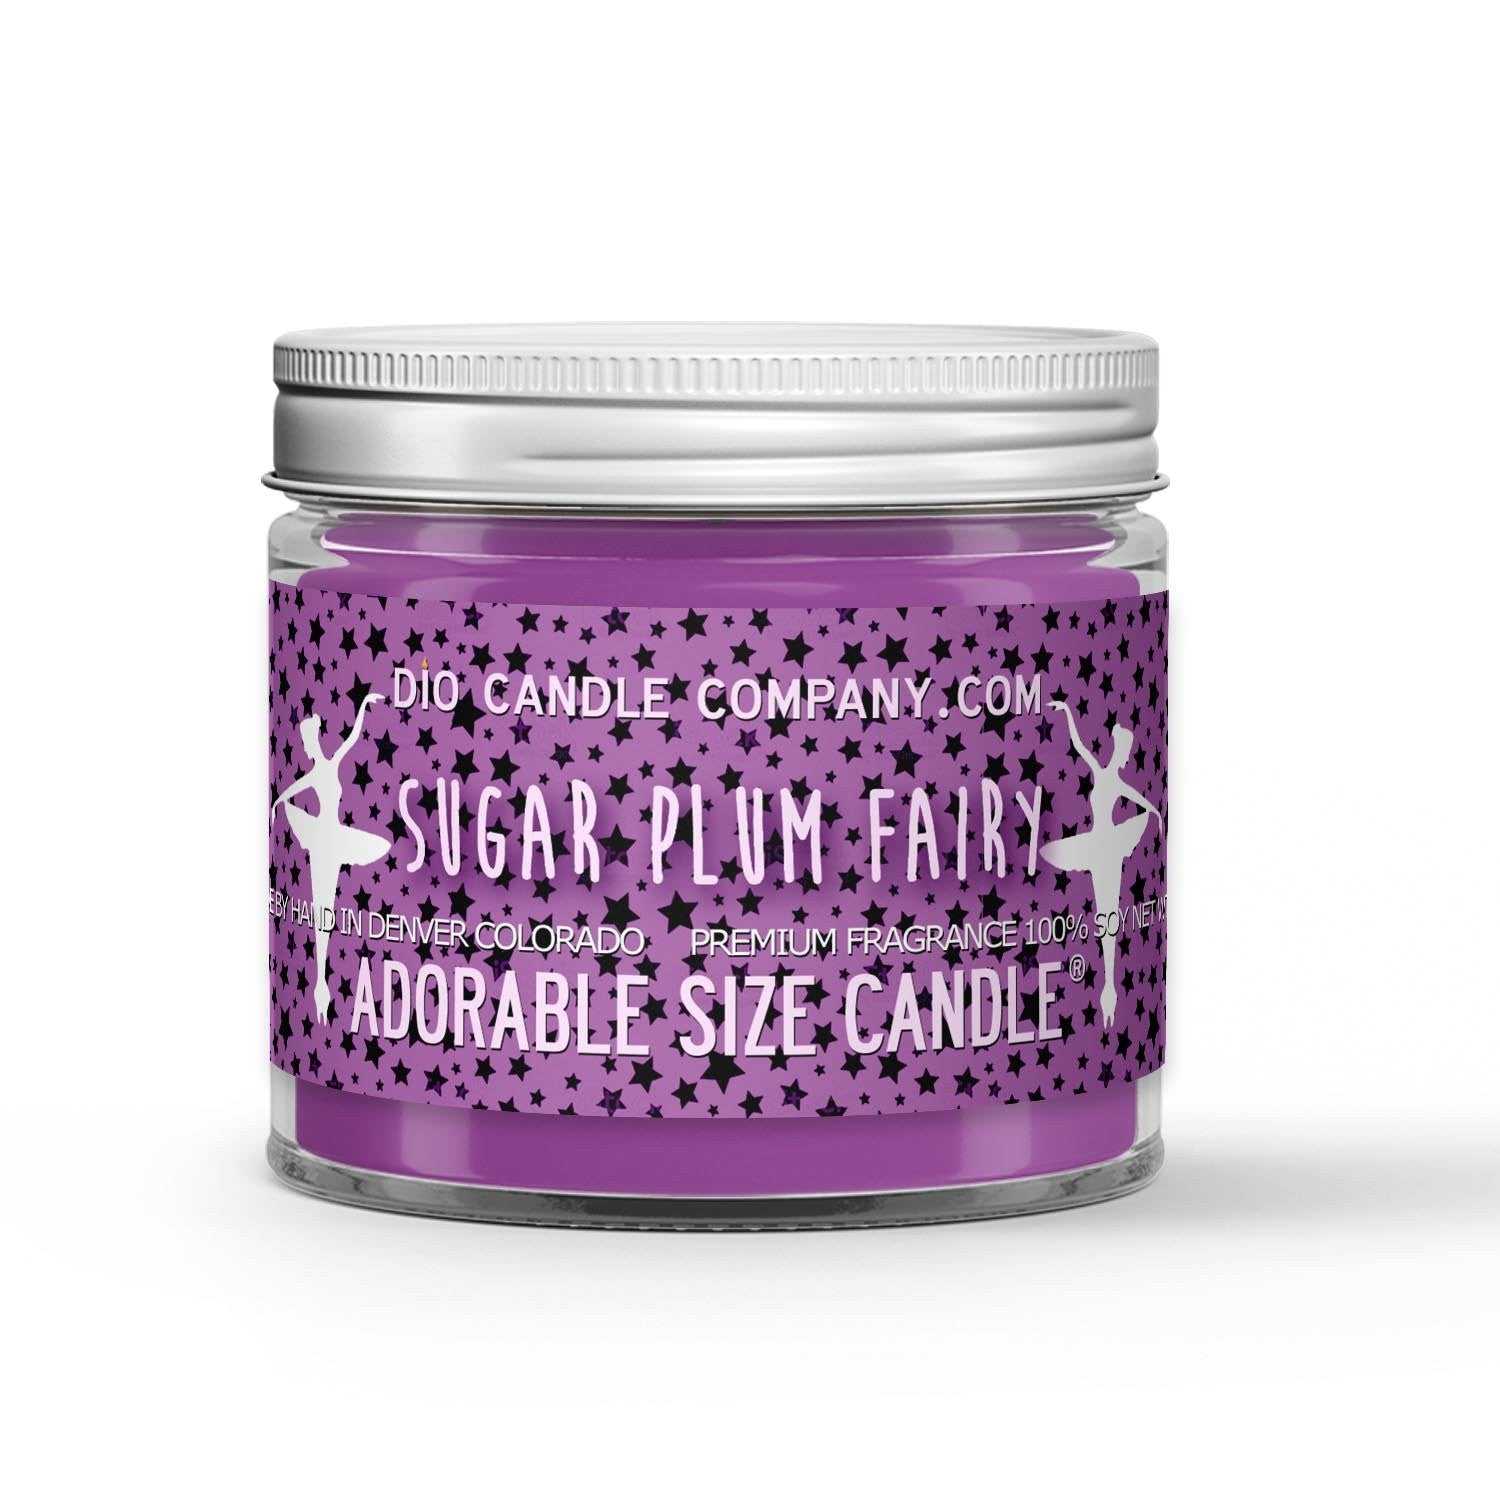 Sugar Plum Fairy Candle - Candied Sugar Plums - 1oz Adorable Size Candle® - Dio Candle Company